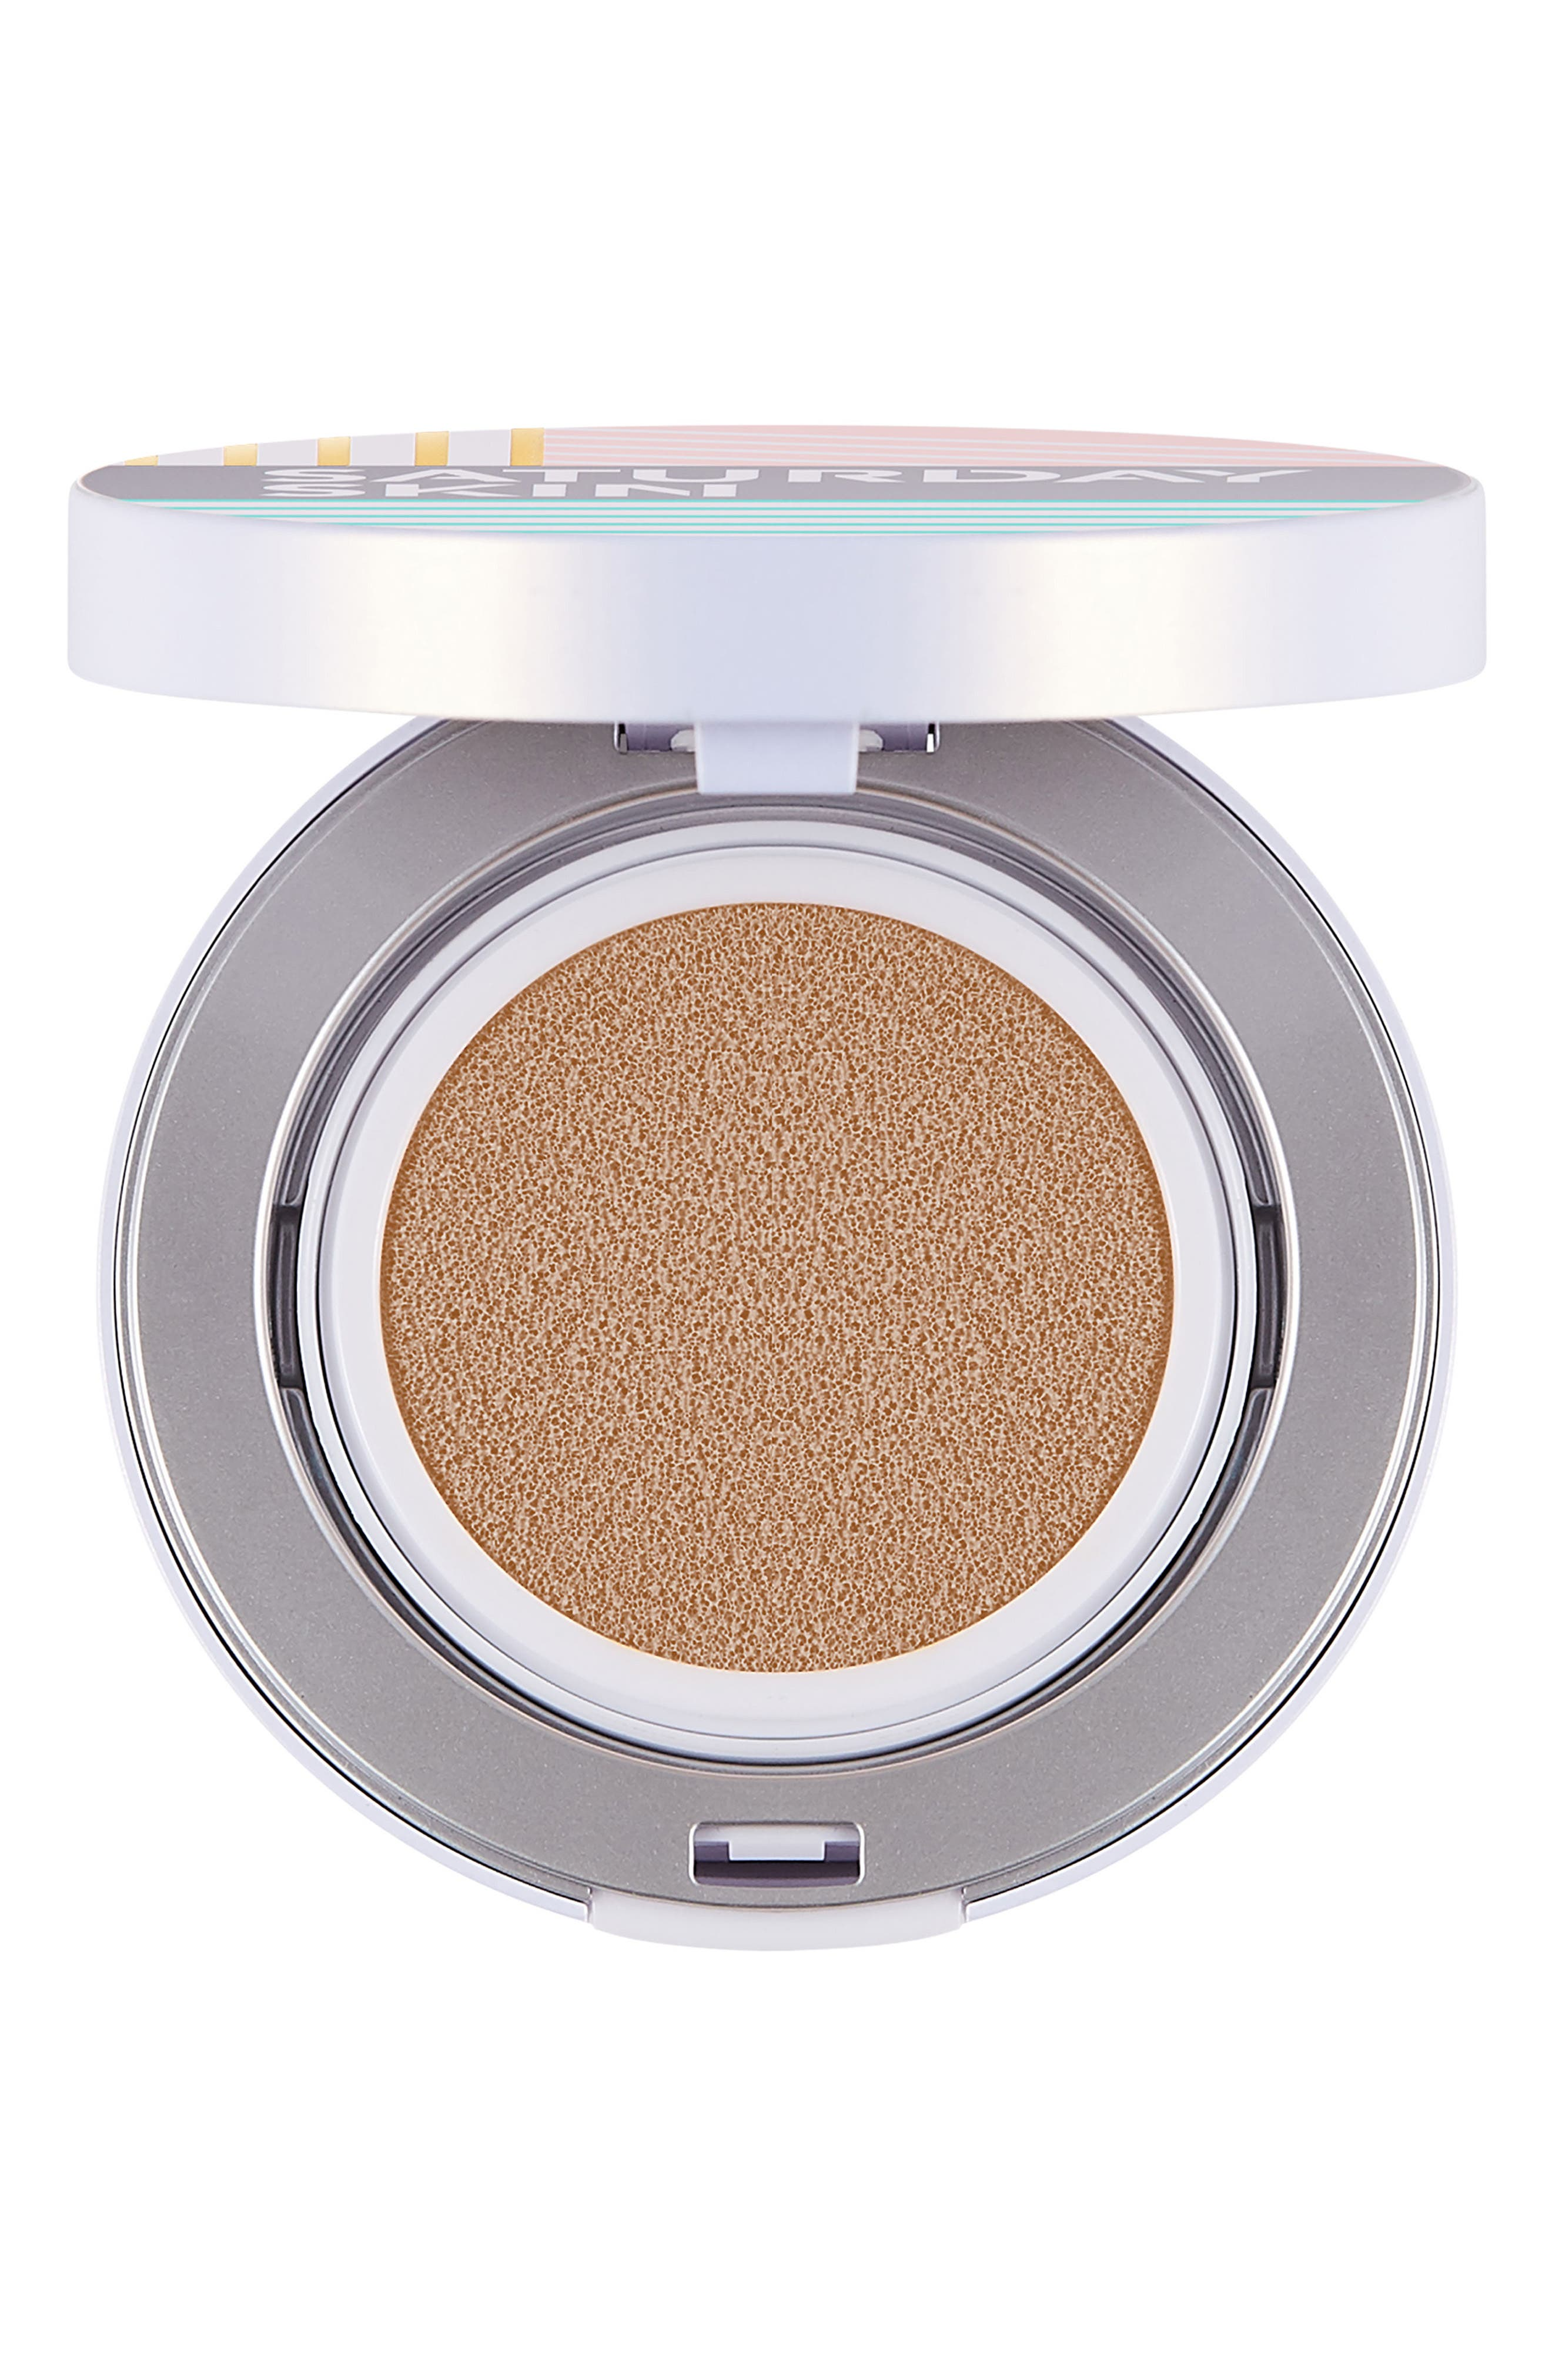 Alternate Image 1 Selected - Saturday Skin All Aglow Sunscreen Perfection Cushion Compact SPF 50